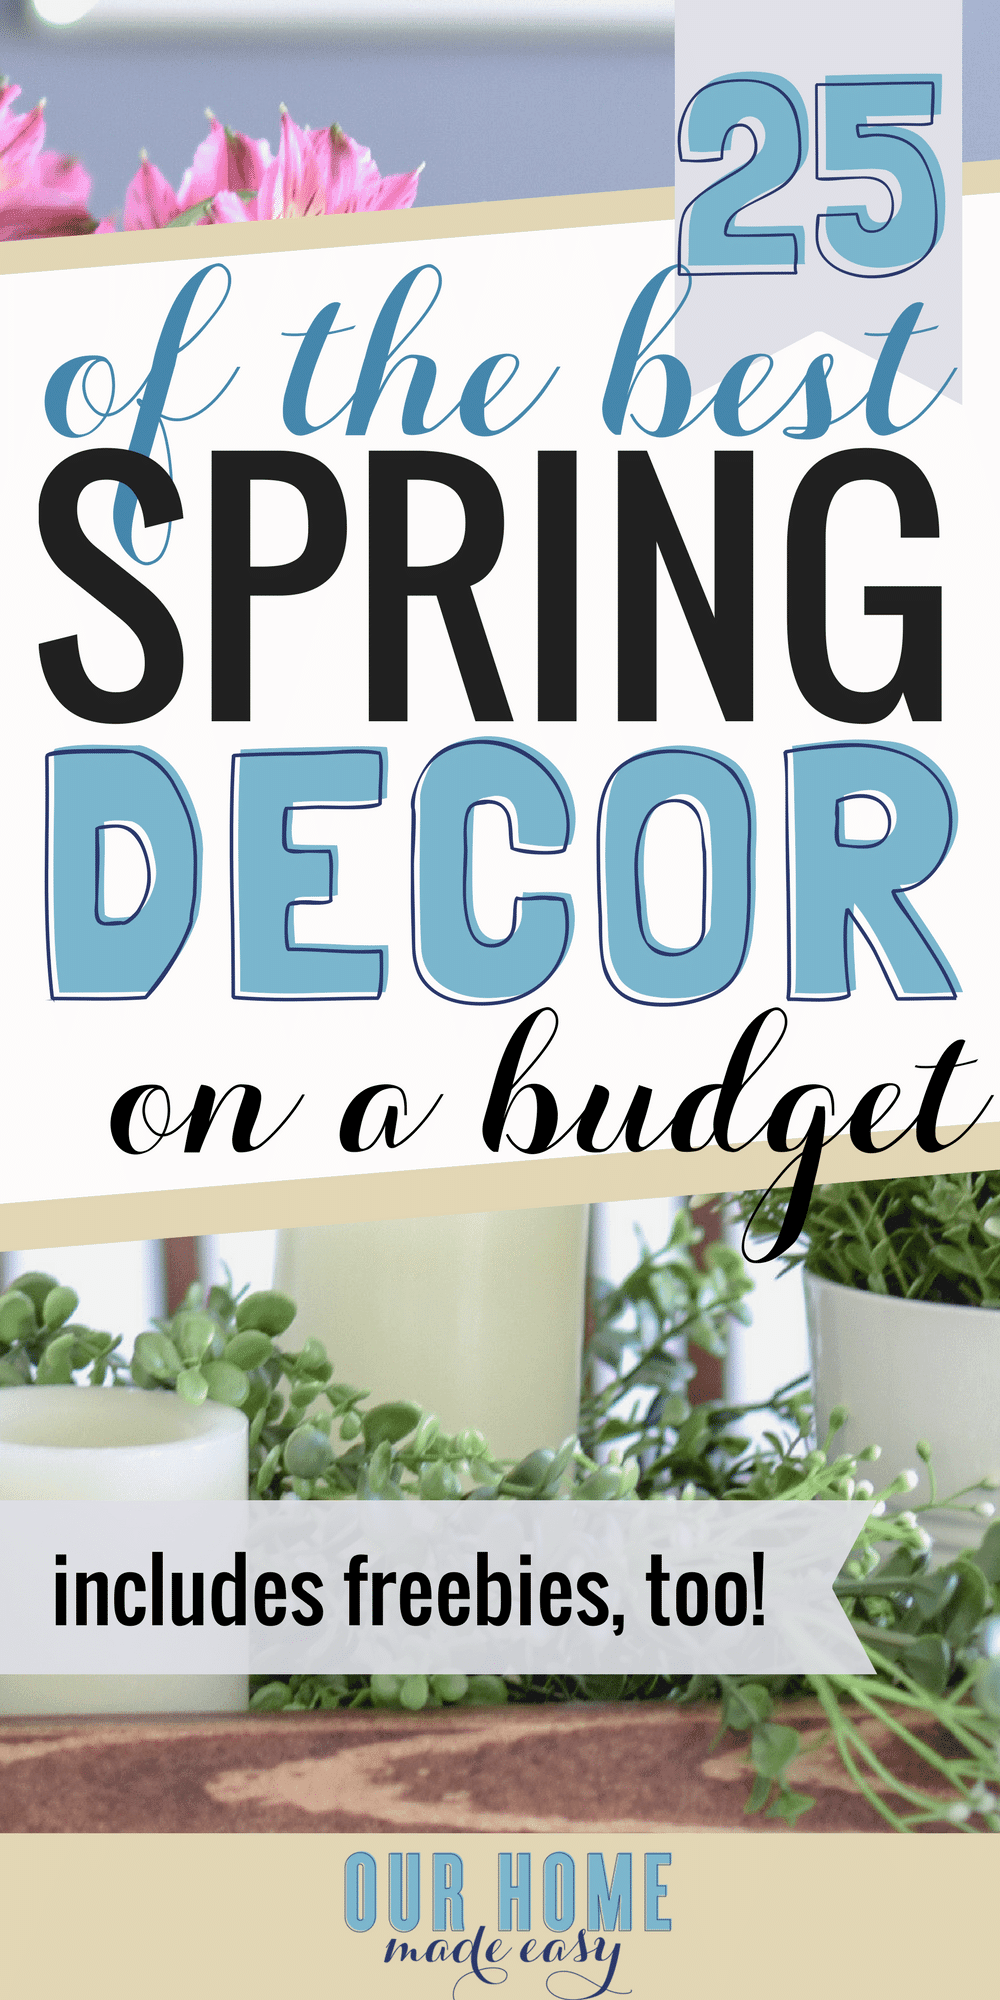 I've found 25 of the best Spring decor finds under $20! I'm also including a few freebies for more decor without spending much money! #spring #homedeocr #springdecor #budgetdecor